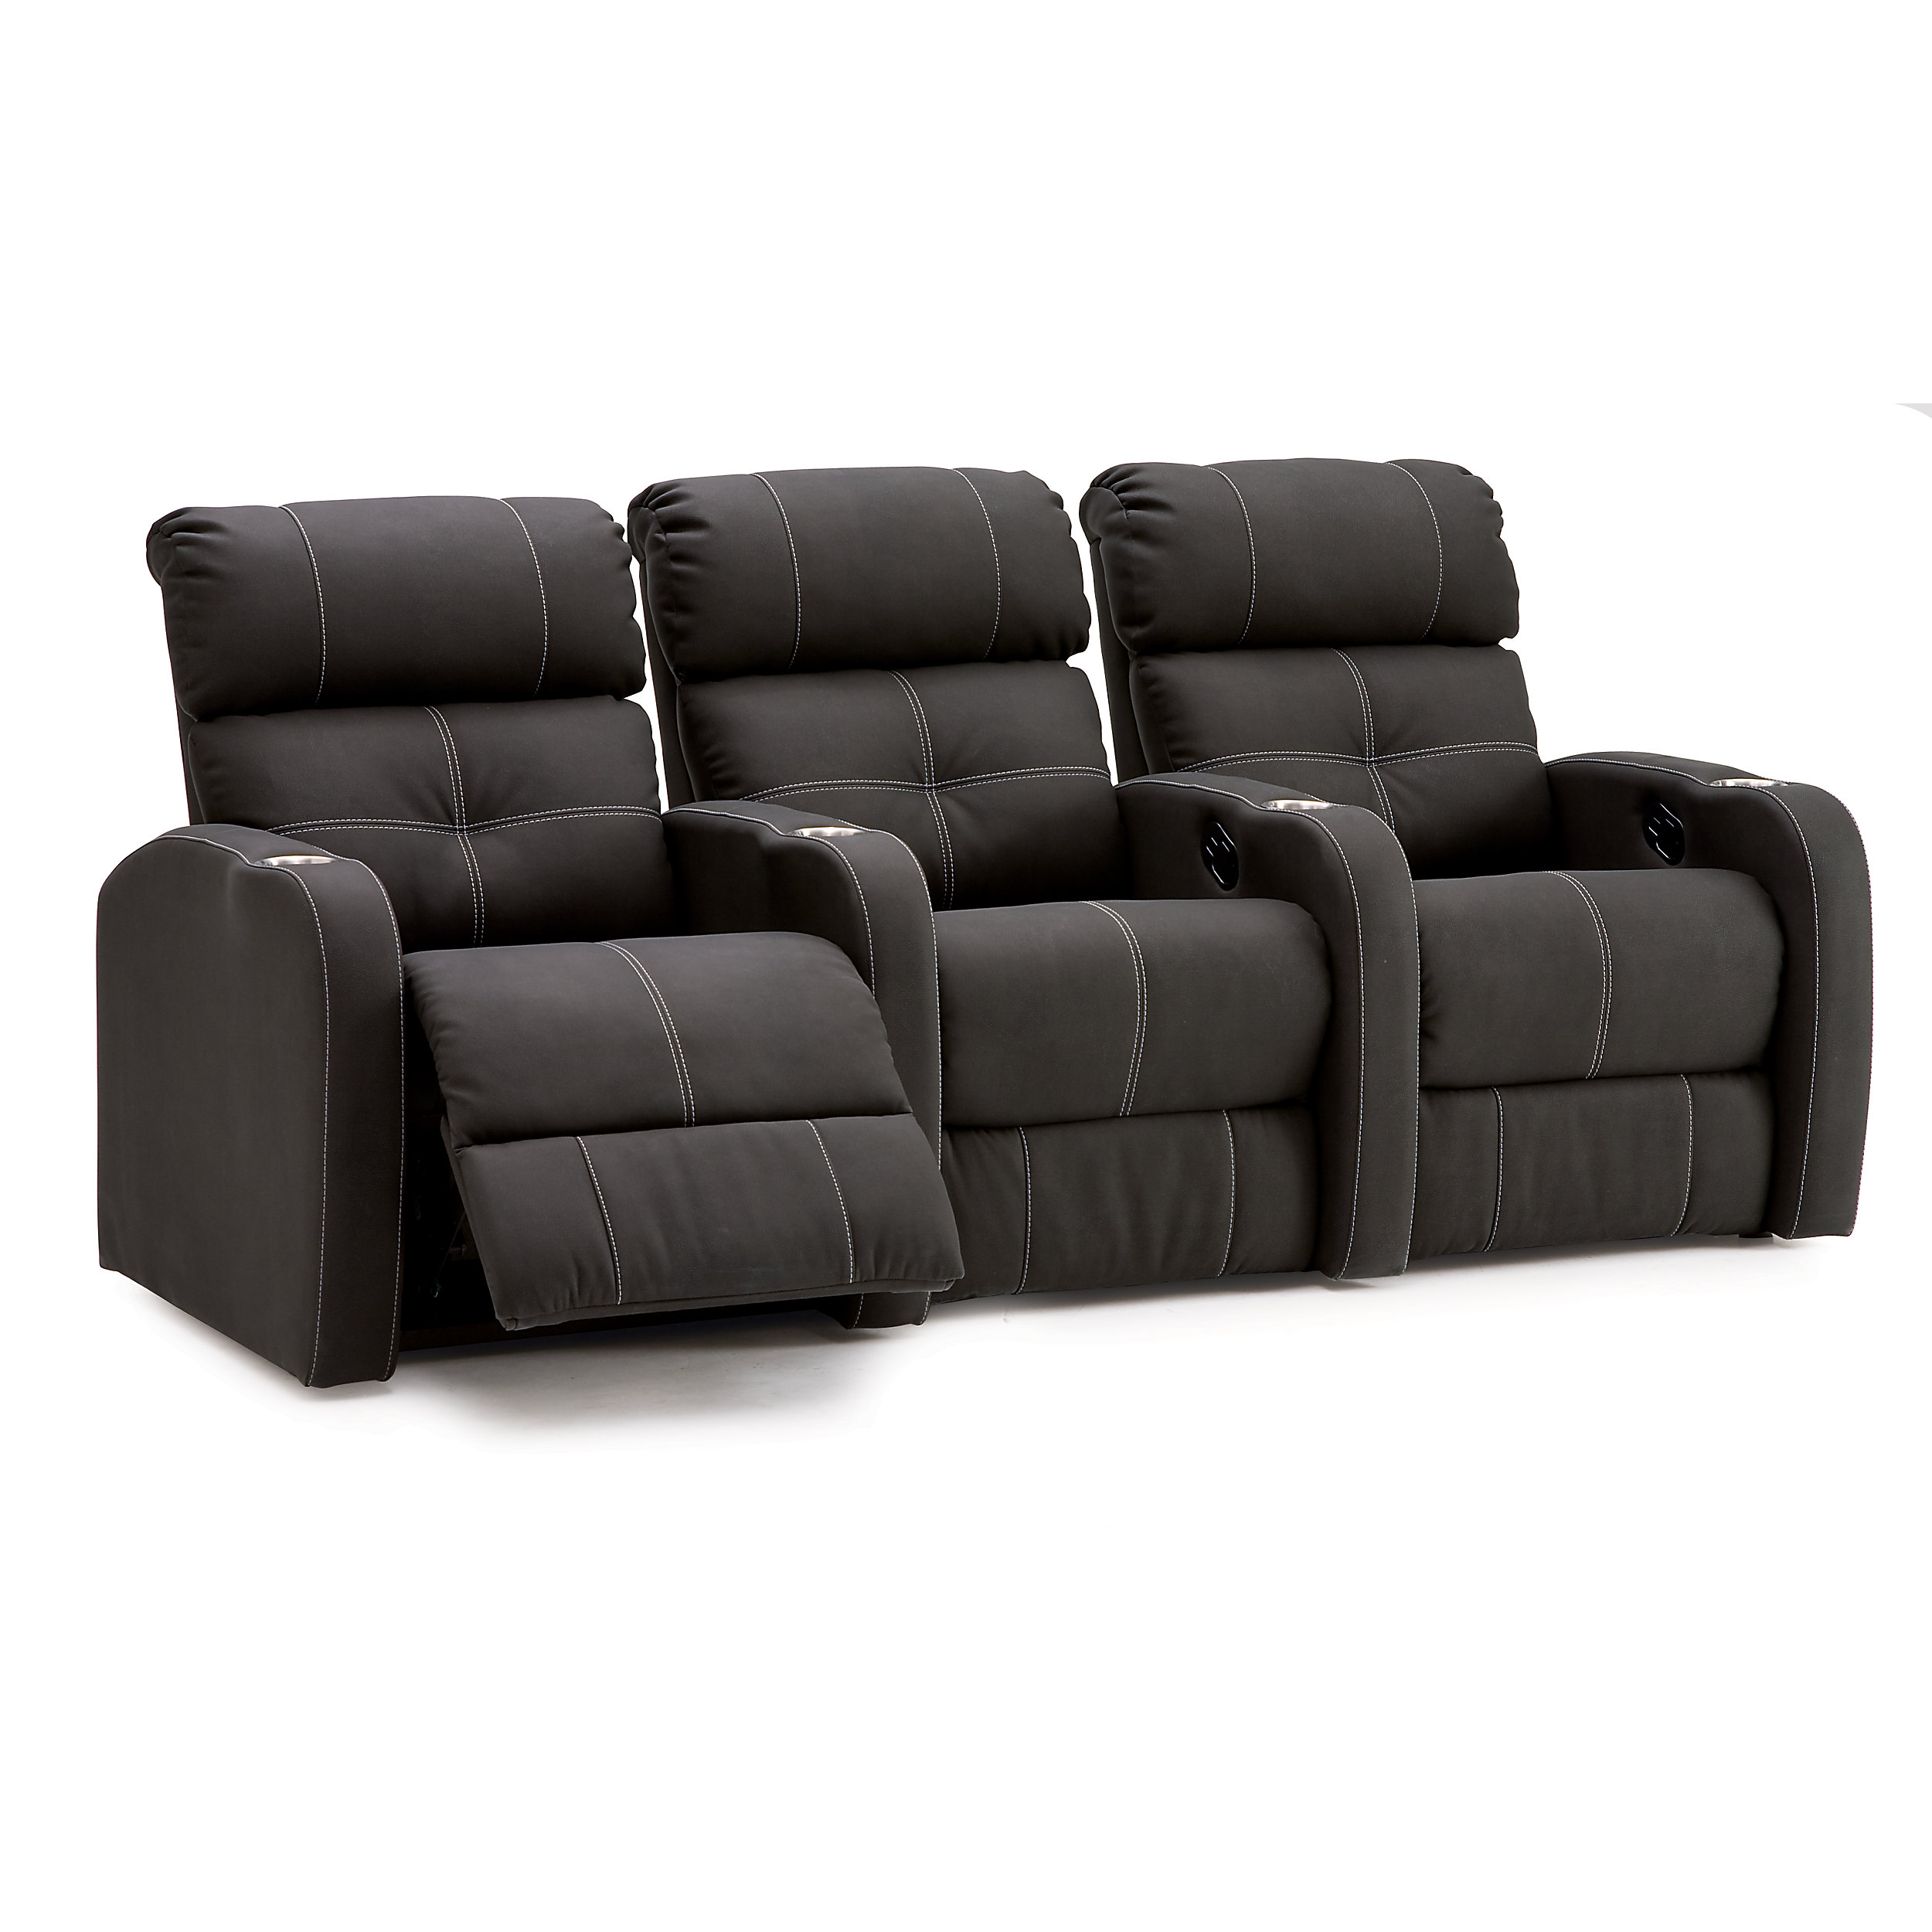 seating entertainment recliners home movie from chair luxury strong theater recliner leather design sofa